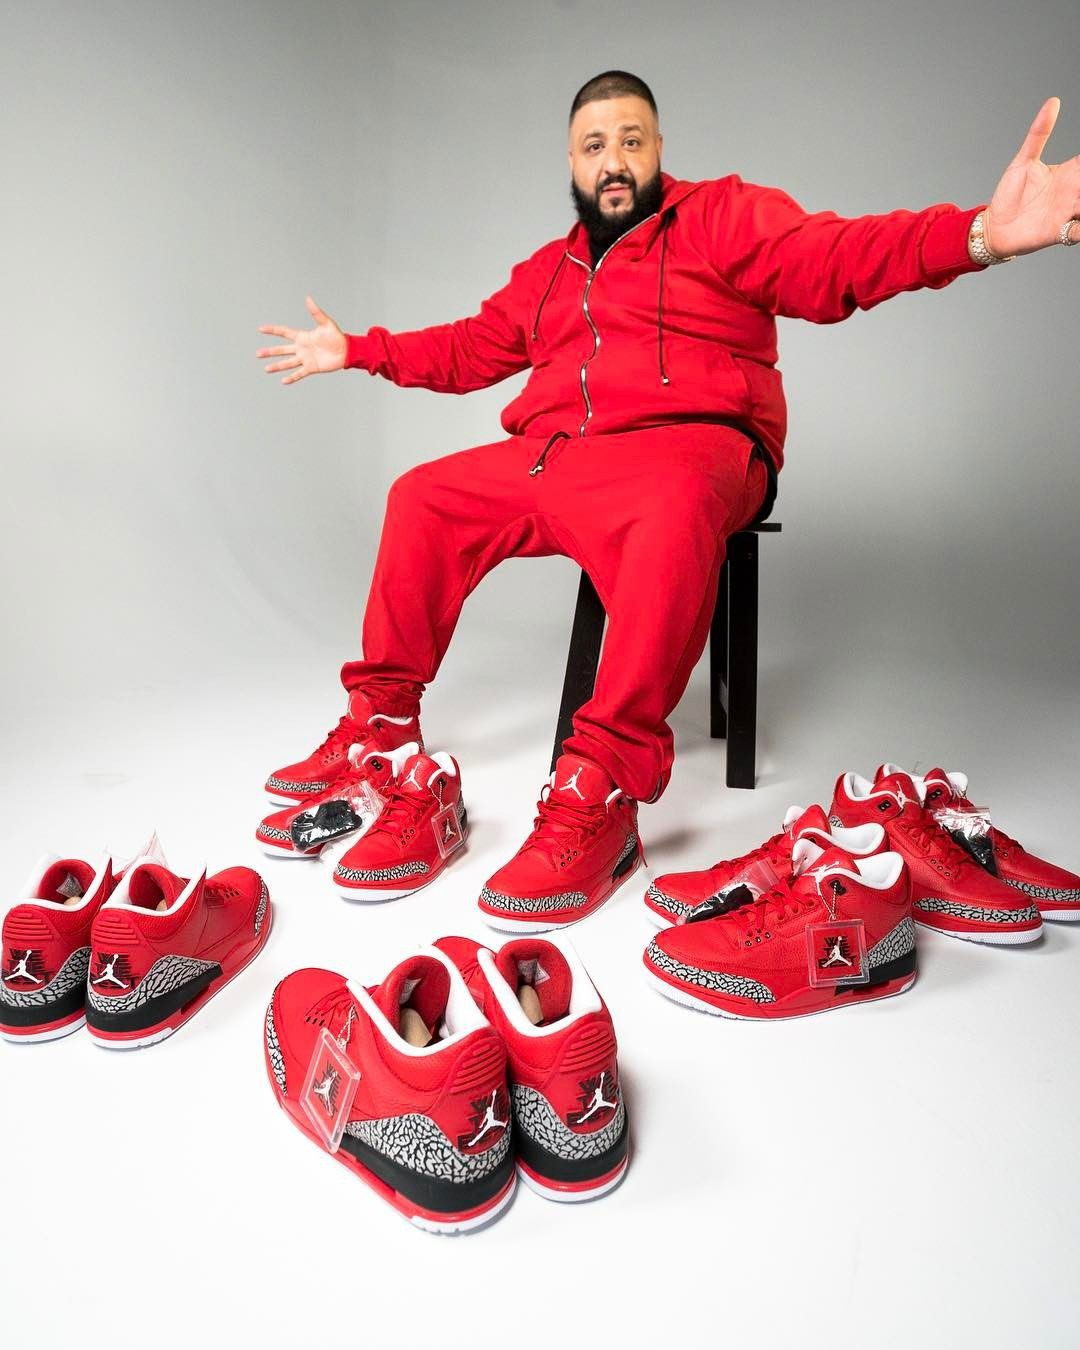 85afd880db6fec I don t care for these that much but good for khaled. ..I think I don t  like the elephant print on the toe DJ Khaled x Air Jordan 3 Retro   Grateful  - EU ...